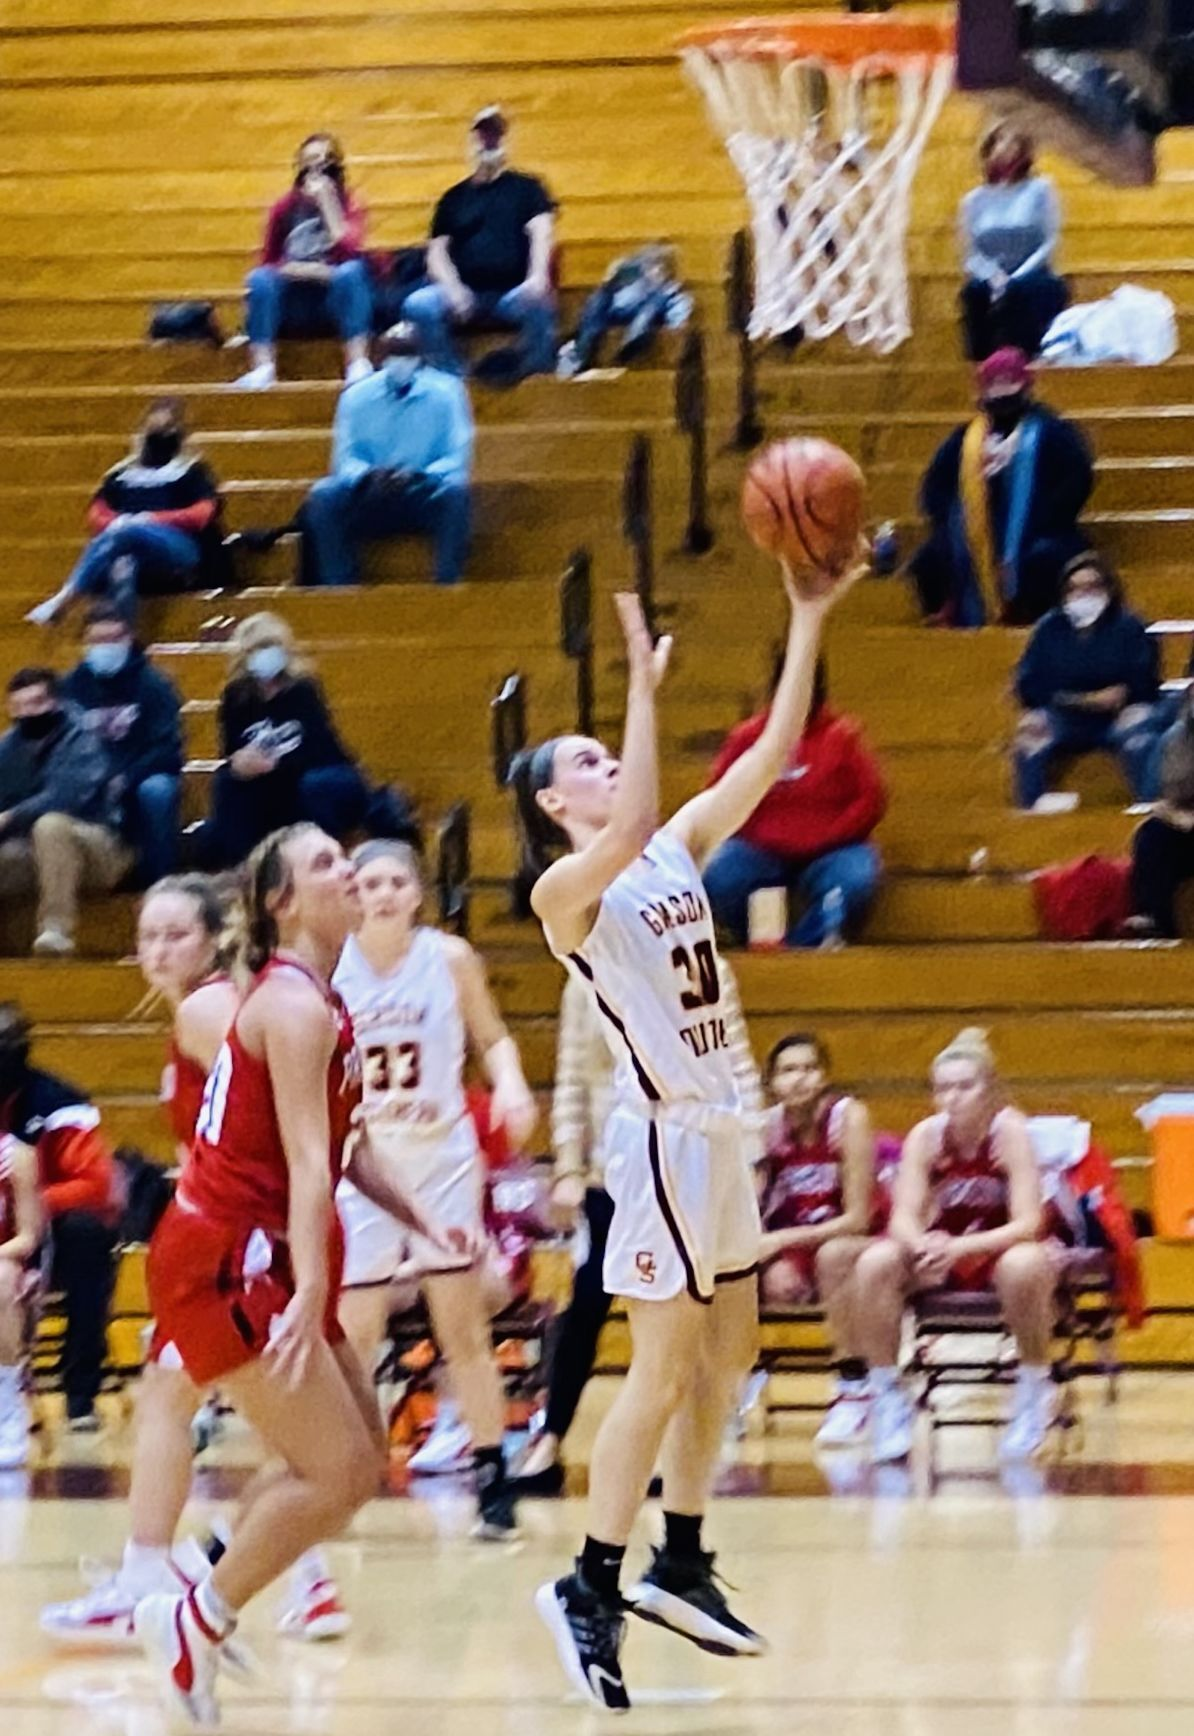 Taylor Hart layup for Gibson Southern